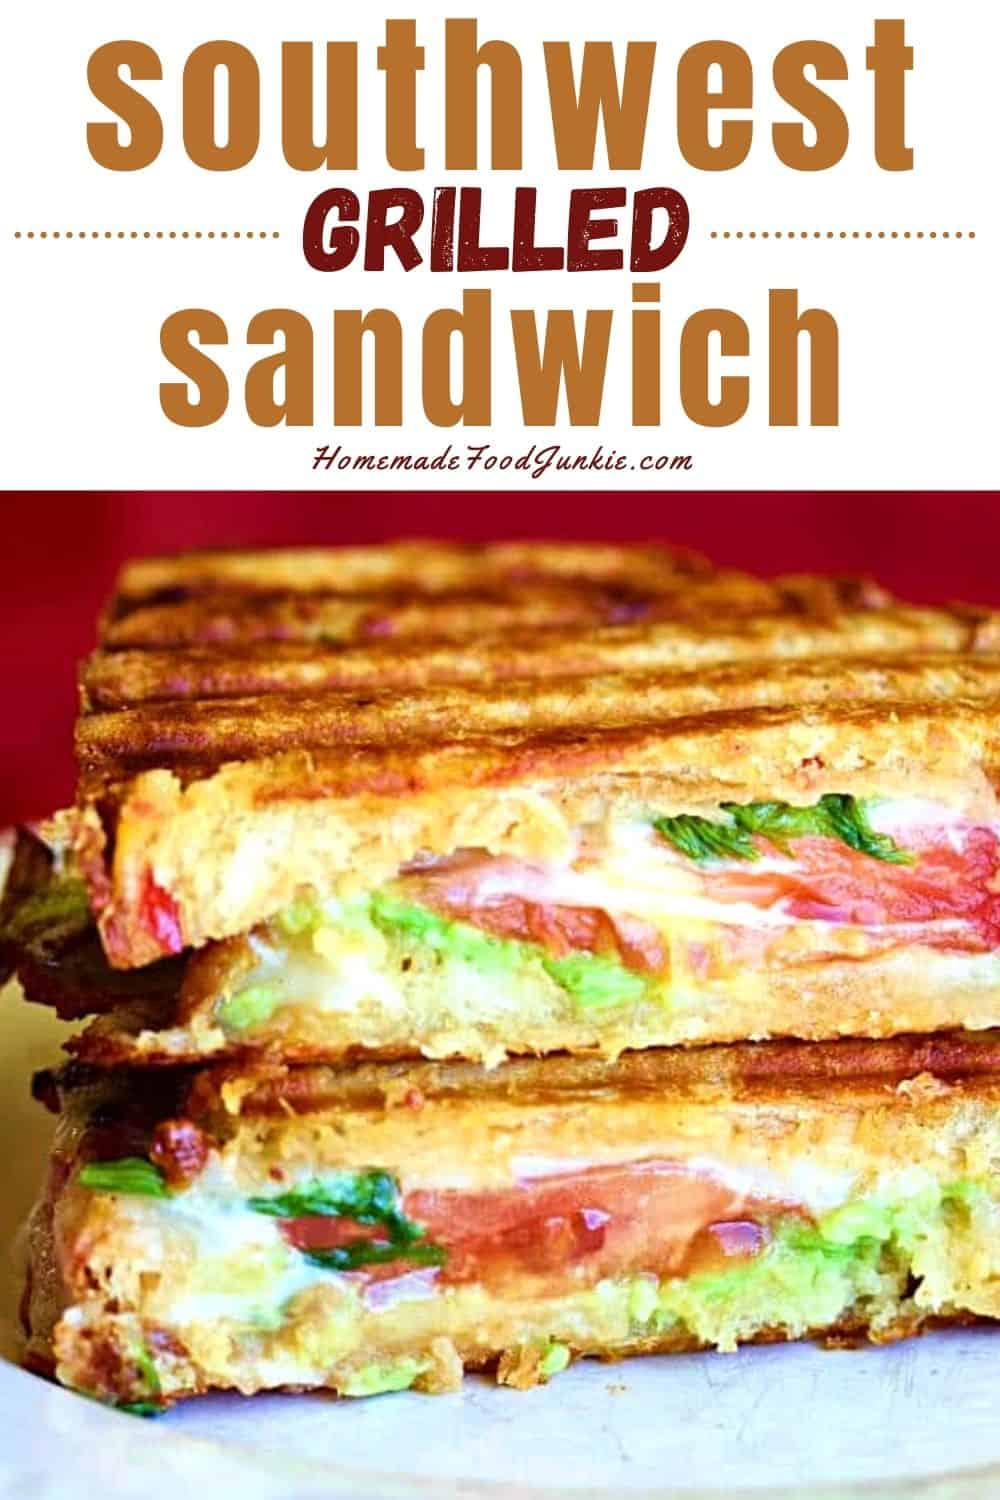 Southwest grilled sandwich-pin image